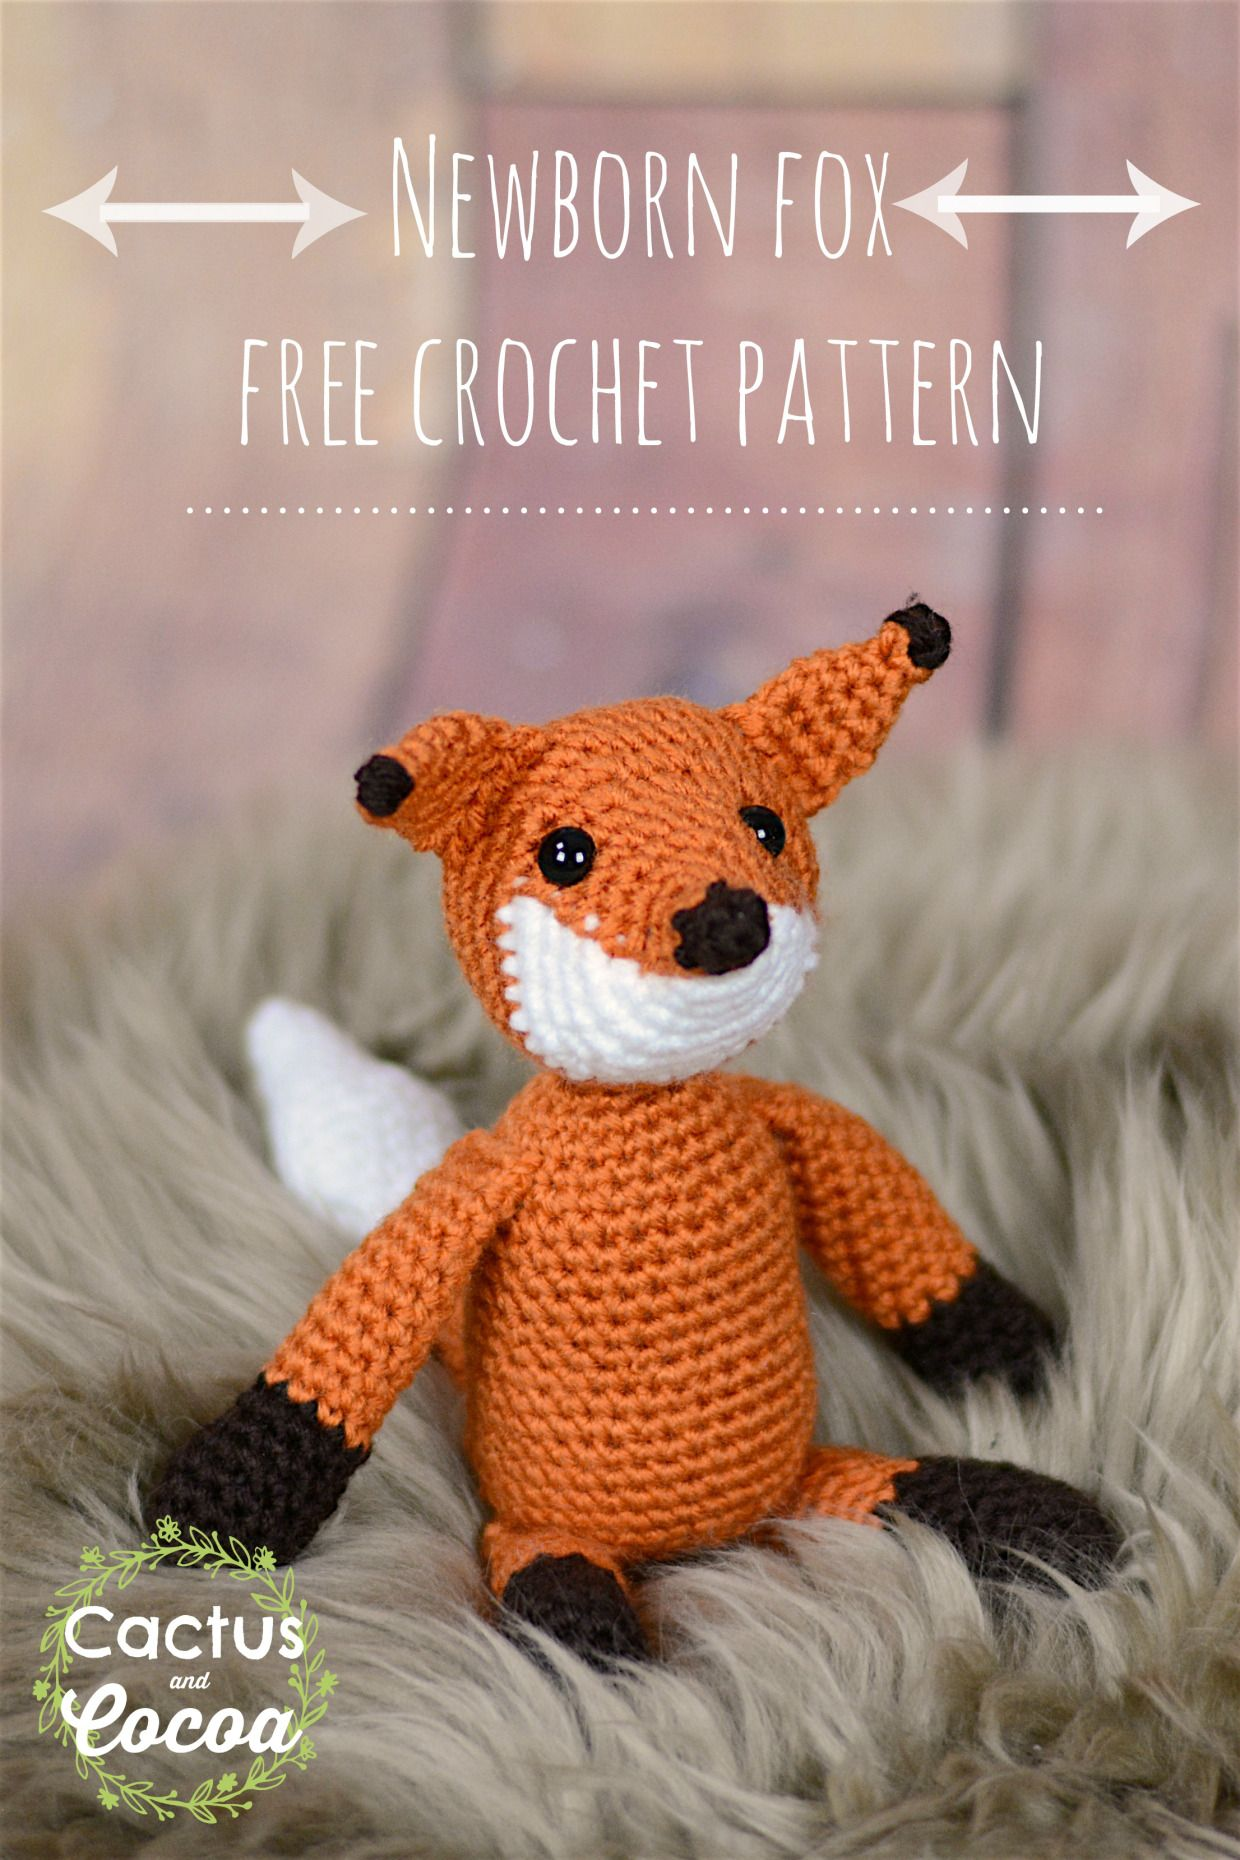 Newborn Fox FREE crochet pattern! March is National Crochet Month ...